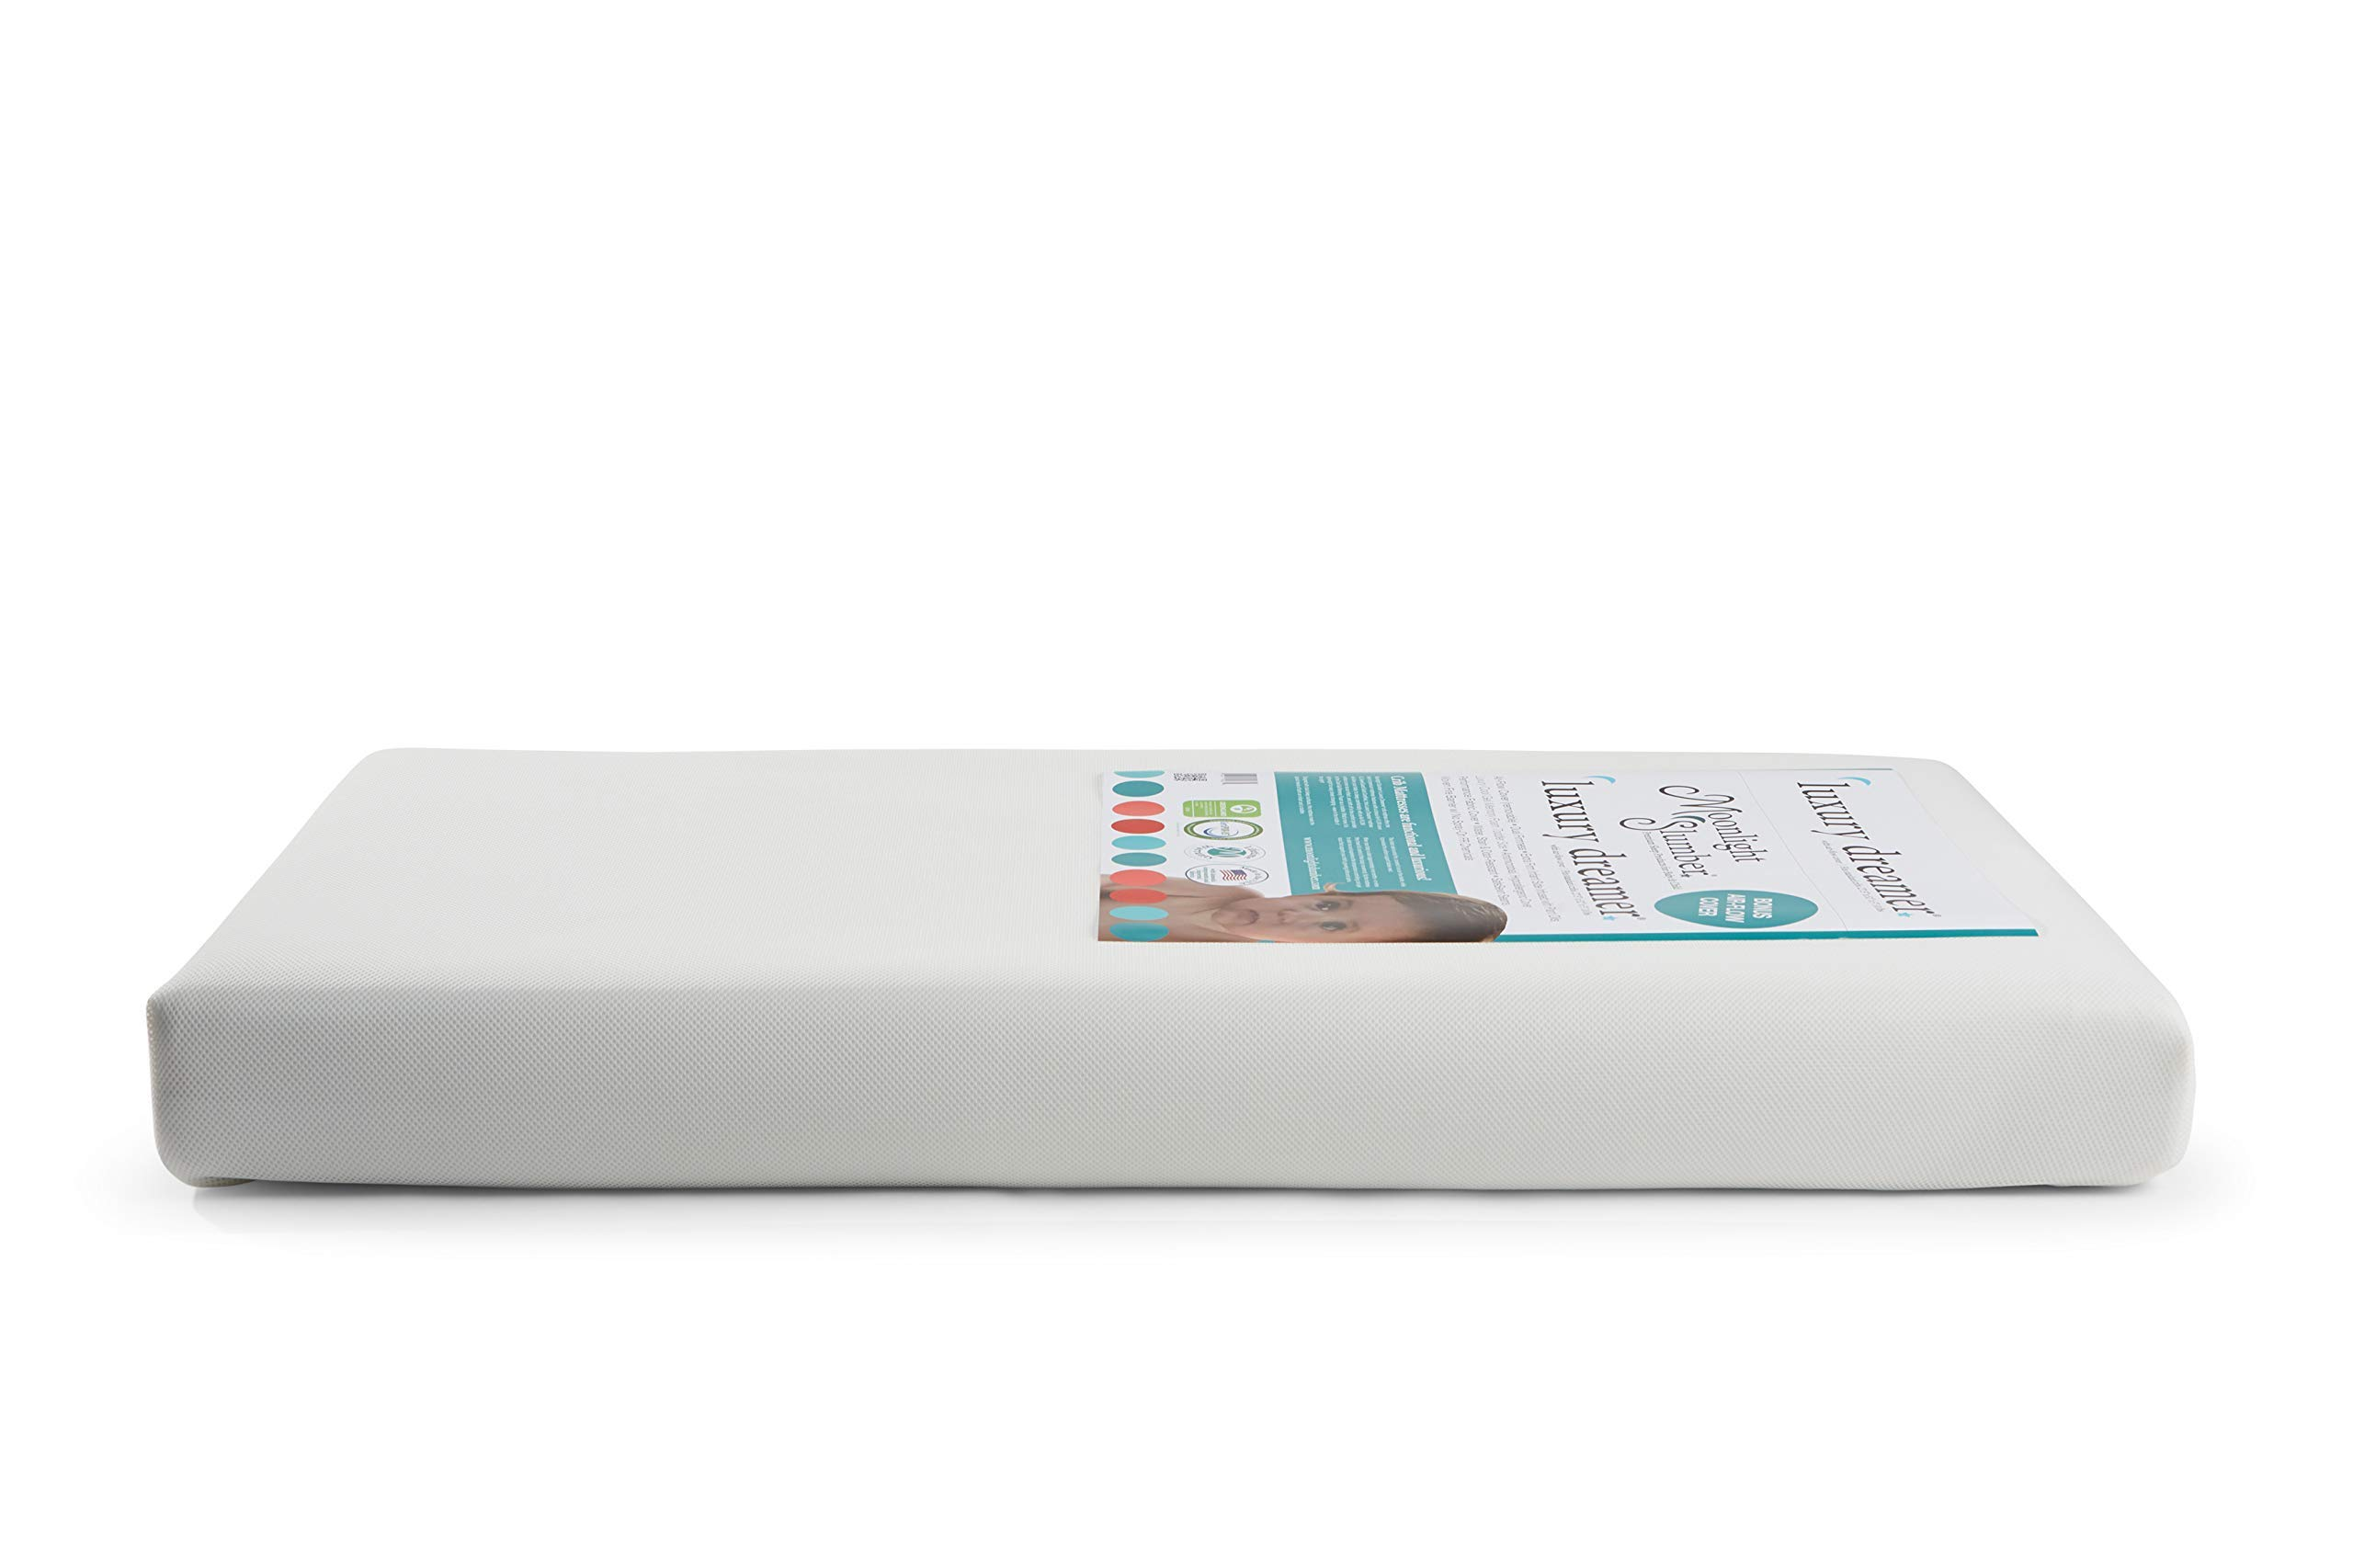 Moonlight Slumber Luxury Dreamer Crib Mattress with Dual Surfaces: Airflow Sleep Surface on Firm Infant Side, Cooling Memory Foam on Toddler Side. Lightweight, Waterproof, Hypoallergenic. Made in USA by Moonlight Slumber